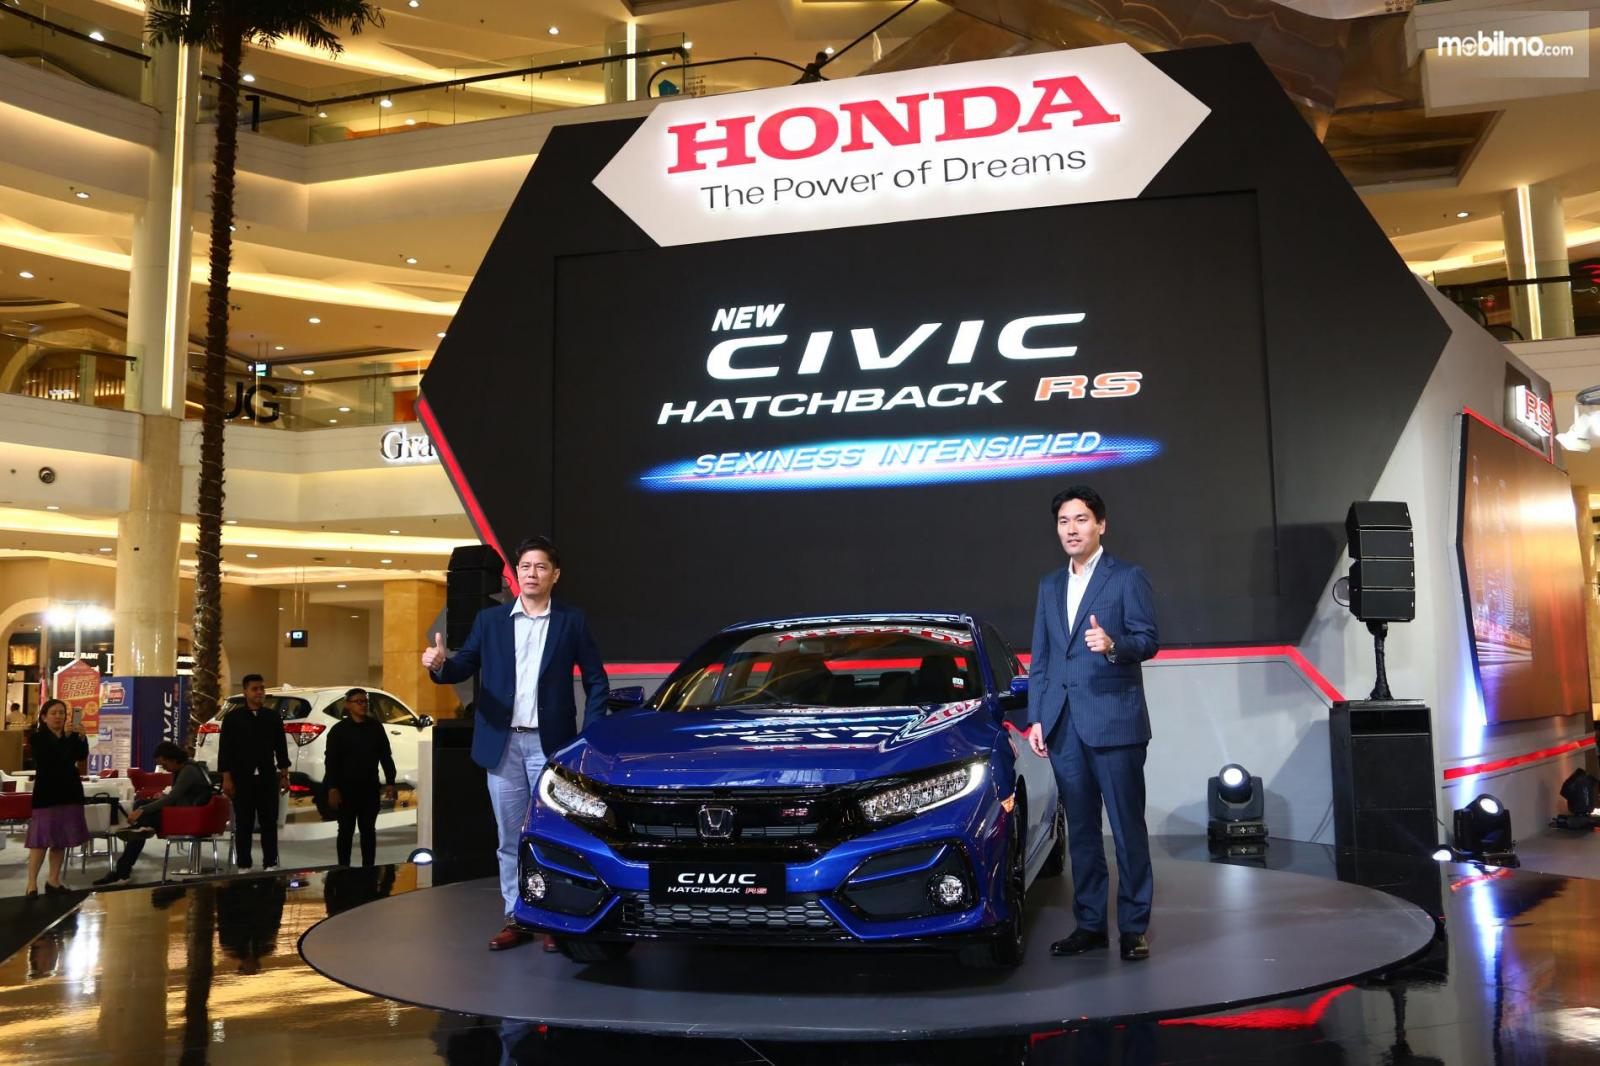 Foto peluncuran Honda Civic Hatchback RS